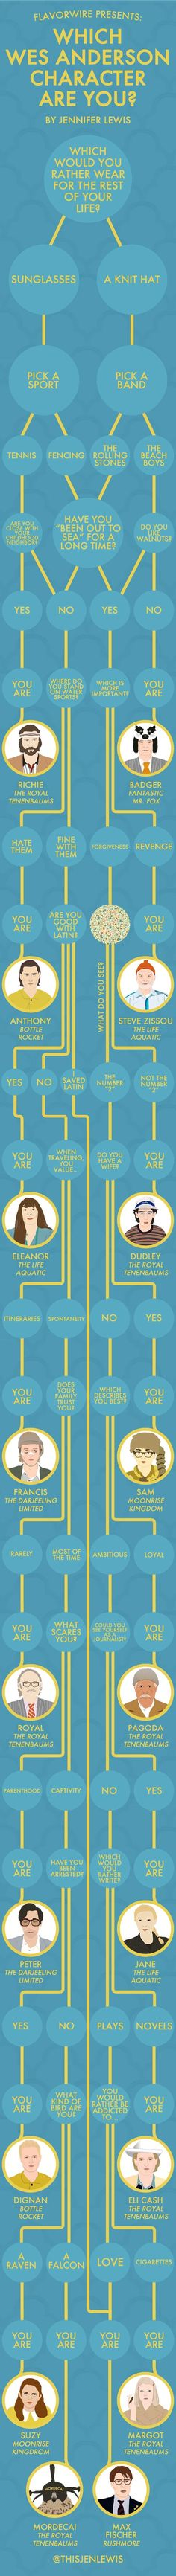 Which Wes Anderson Character Are You? Find Out With This Nifty Infographic